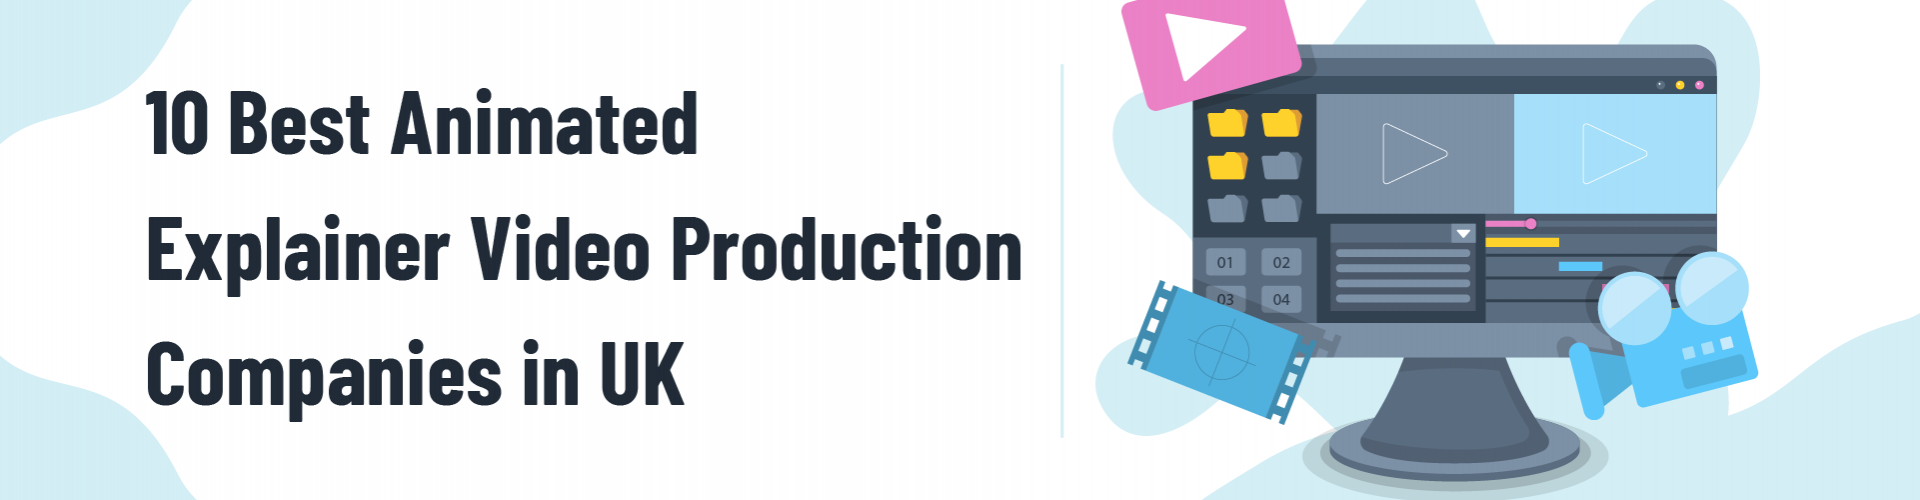 10 Best Animated Explainer Video Production Companies in the UK